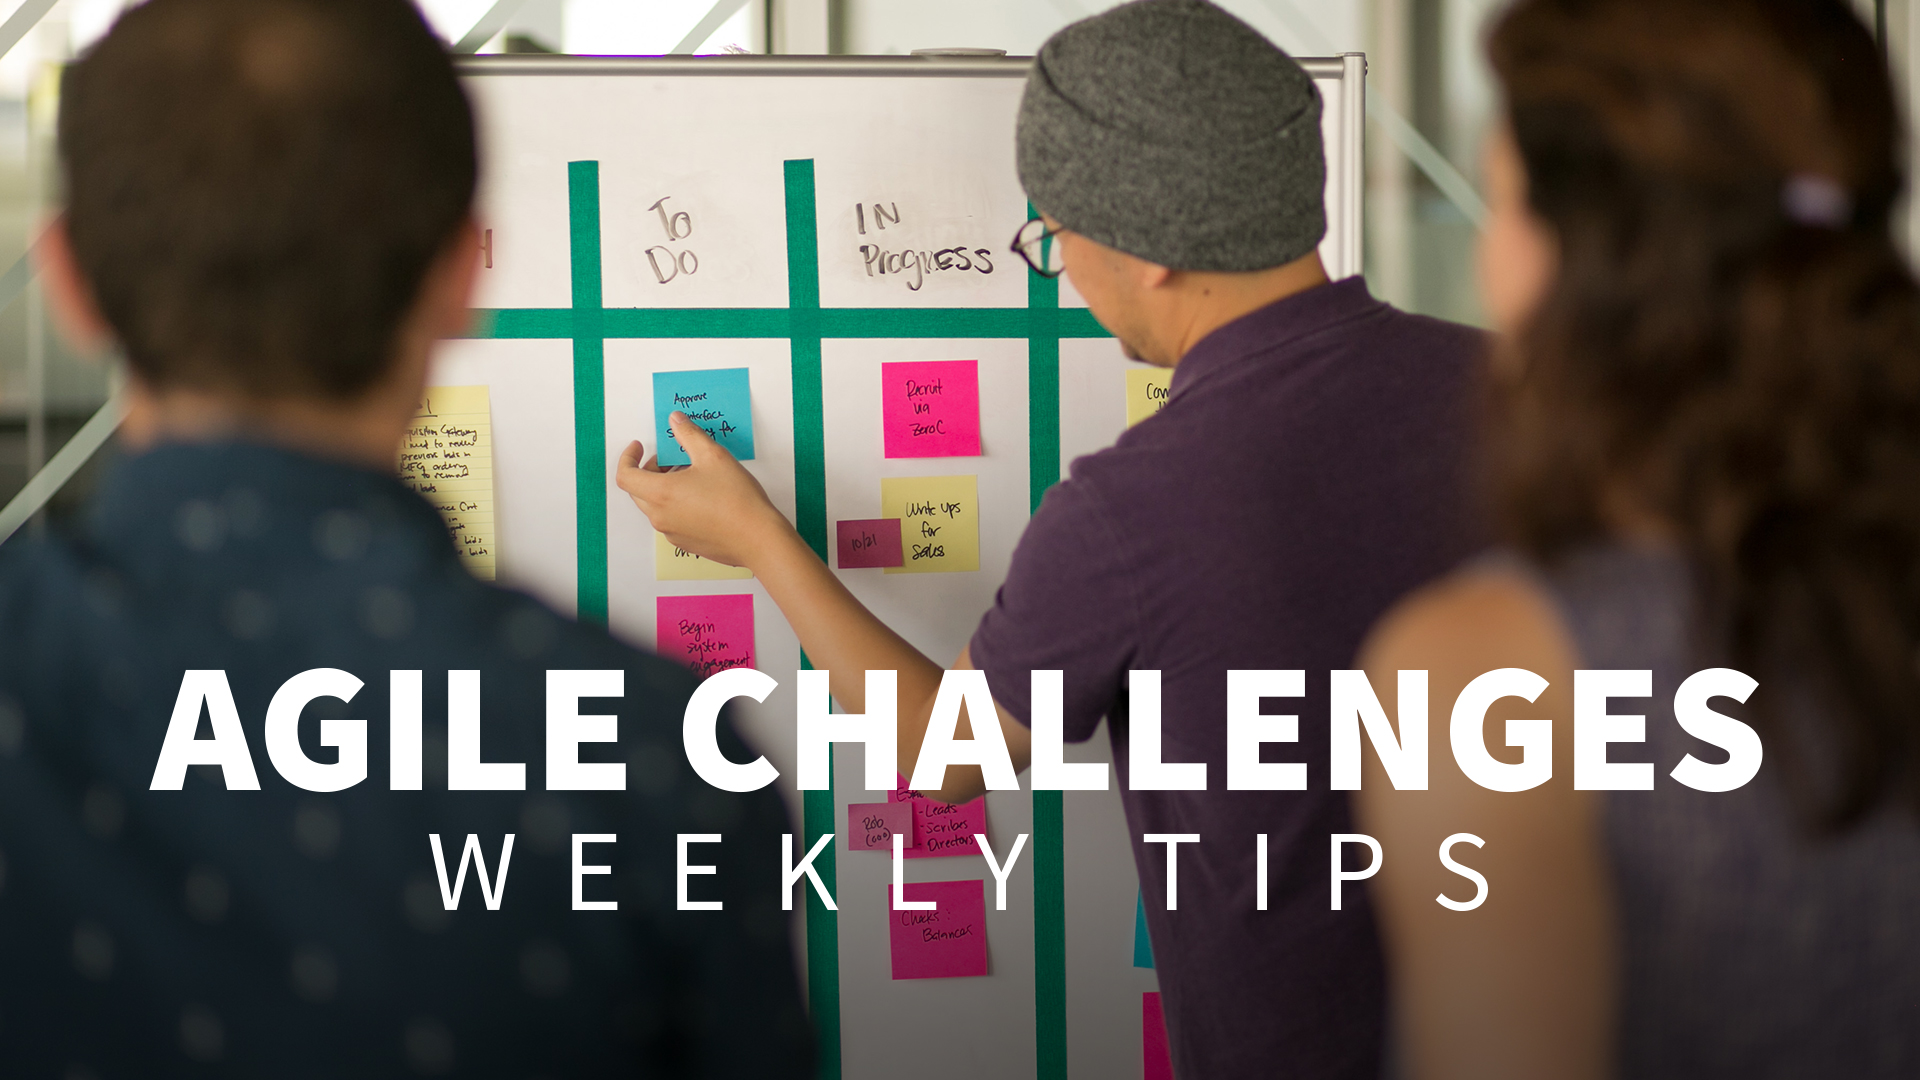 Dealing with change management: Agile Challenges Weekly Tips